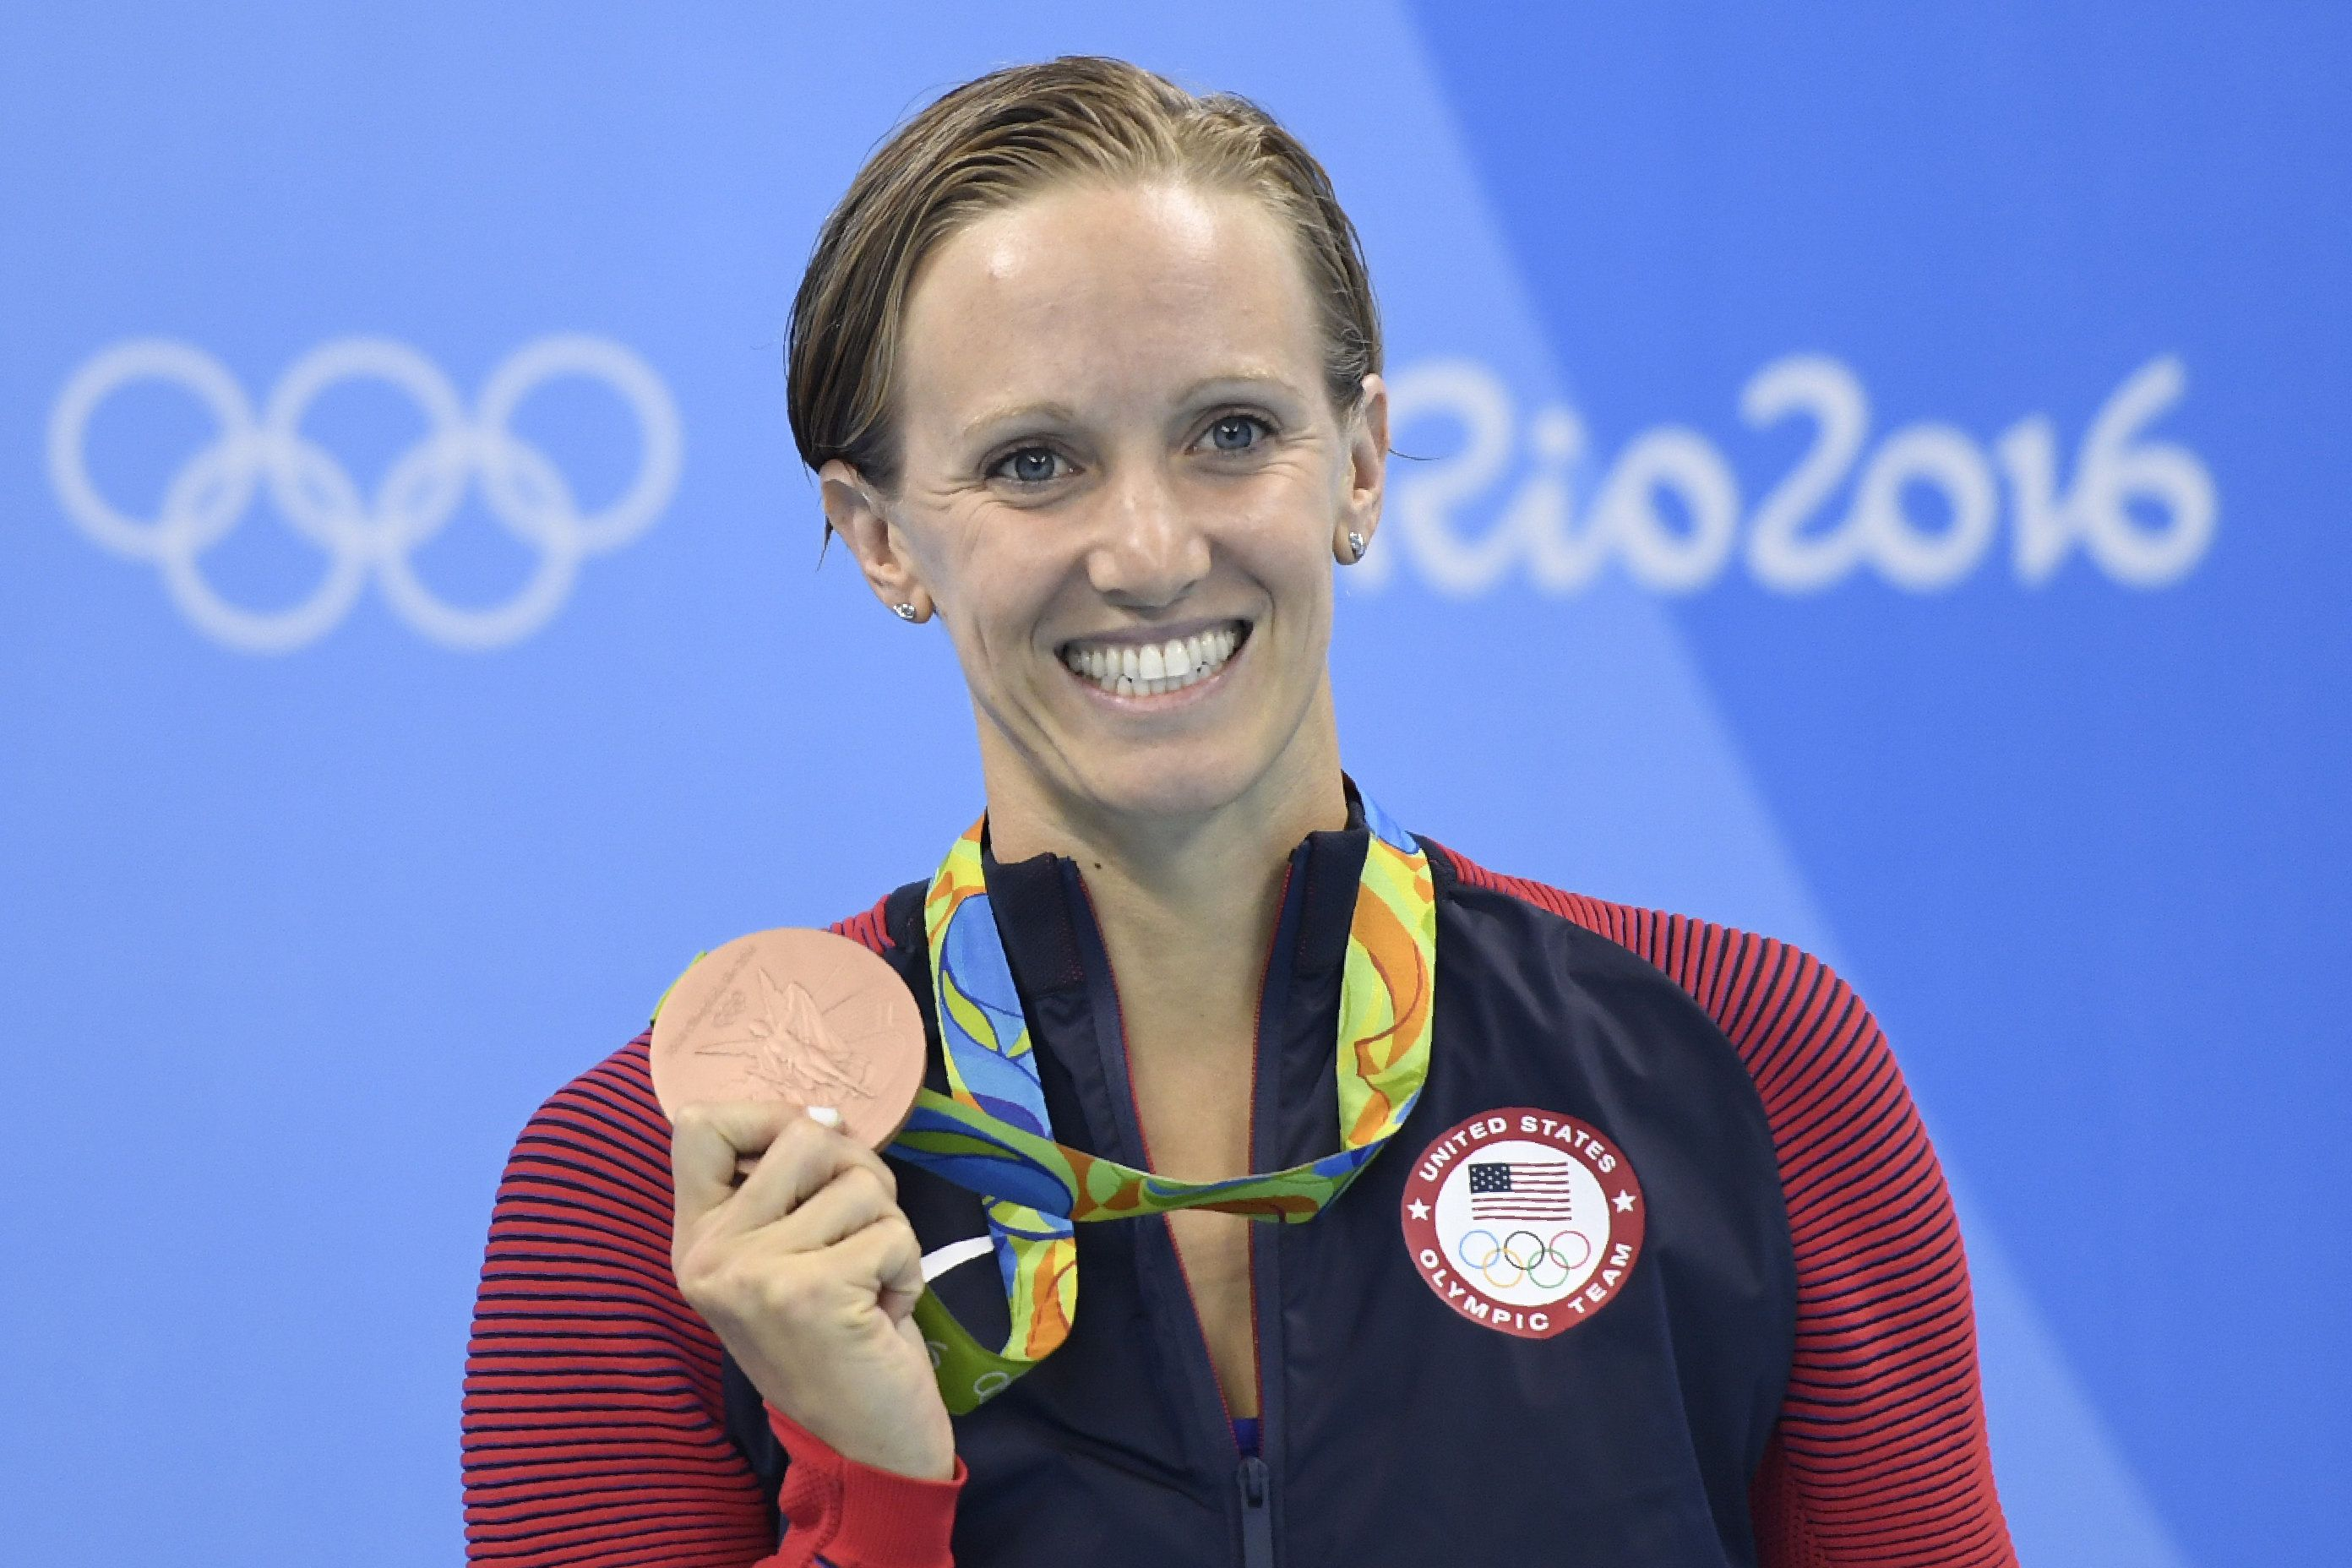 U.S. Olympian Dana Vollmer won bronze in the Women's 100m Butterfly at the 2016 Olympics, after giving...